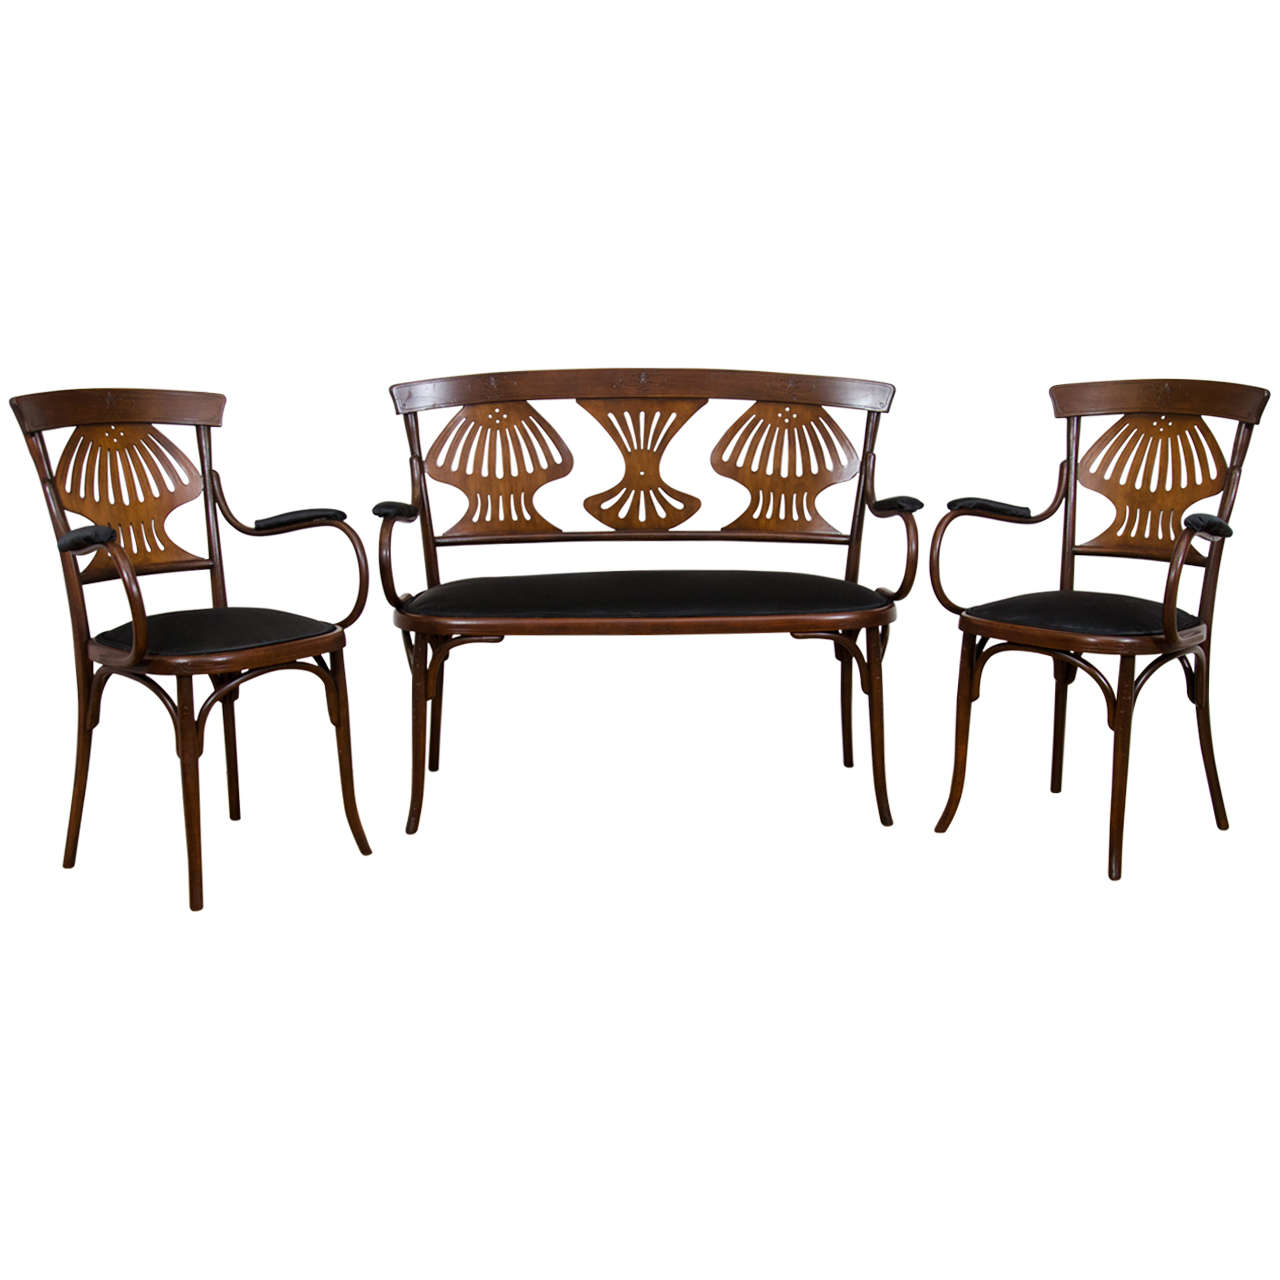 An Antique Three Piece Arts And Crafts Parlor Suite At 1stdibs